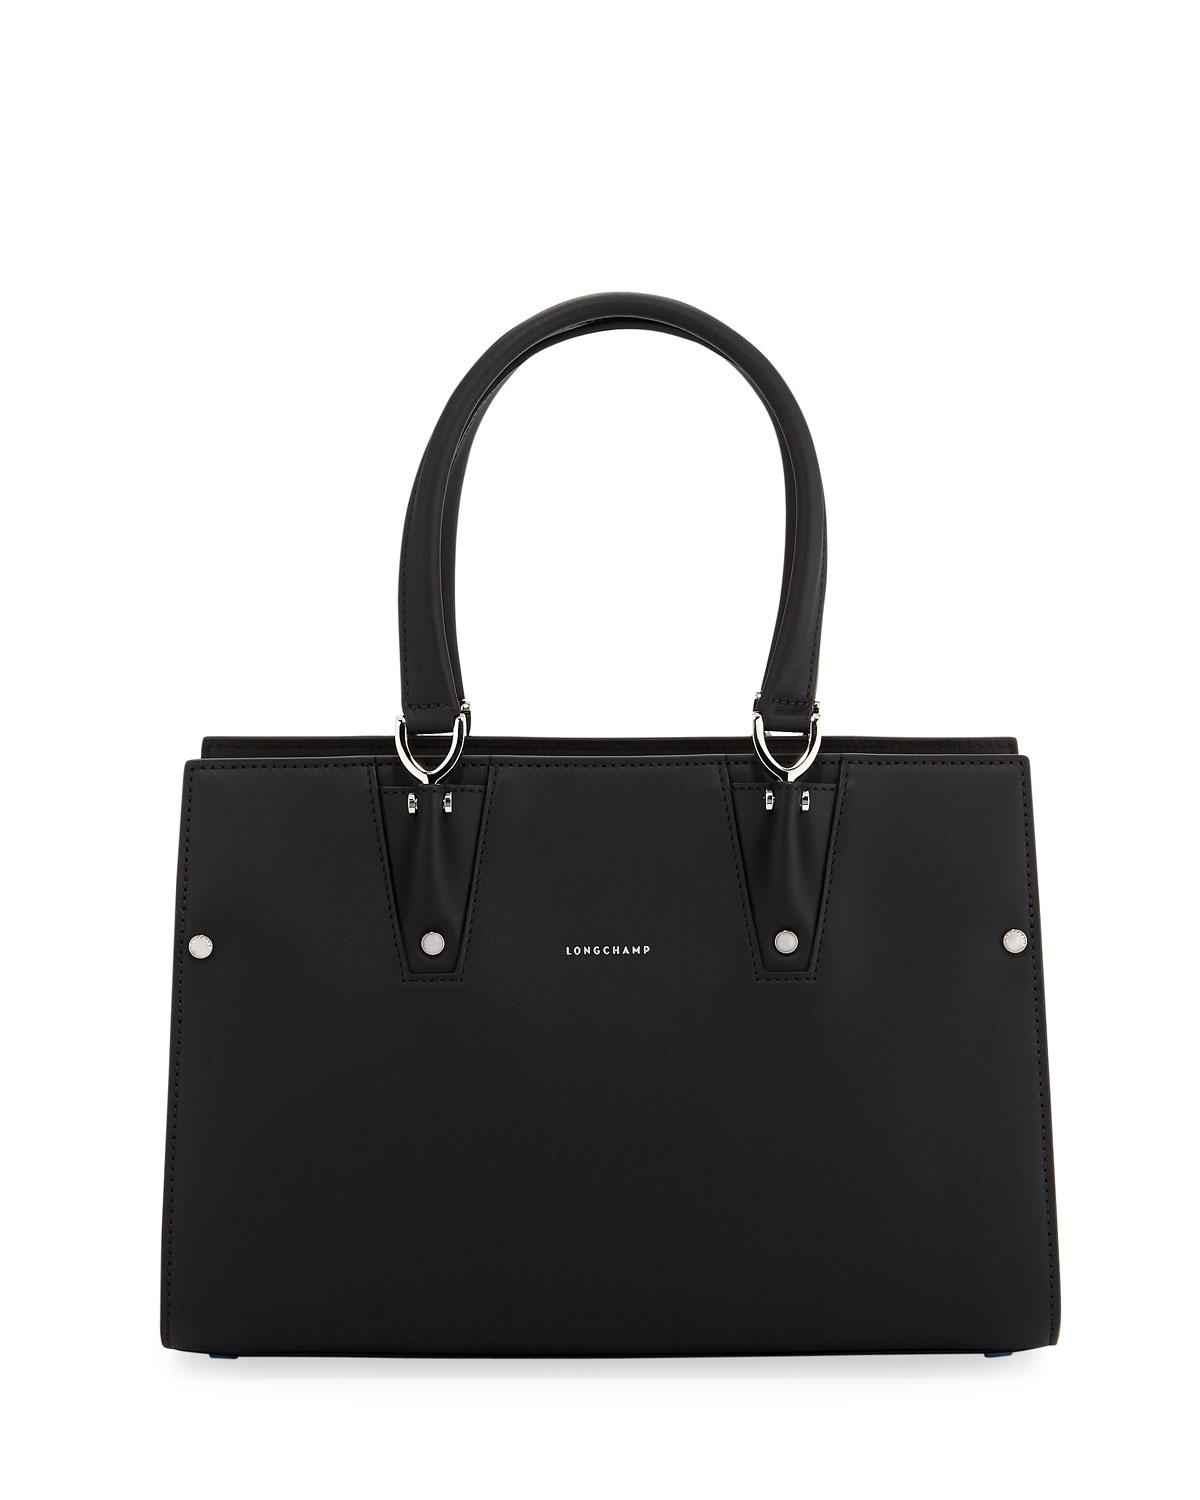 b6f7a431ce Lyst - Longchamp Paris Premier Small Tote Bag in Black